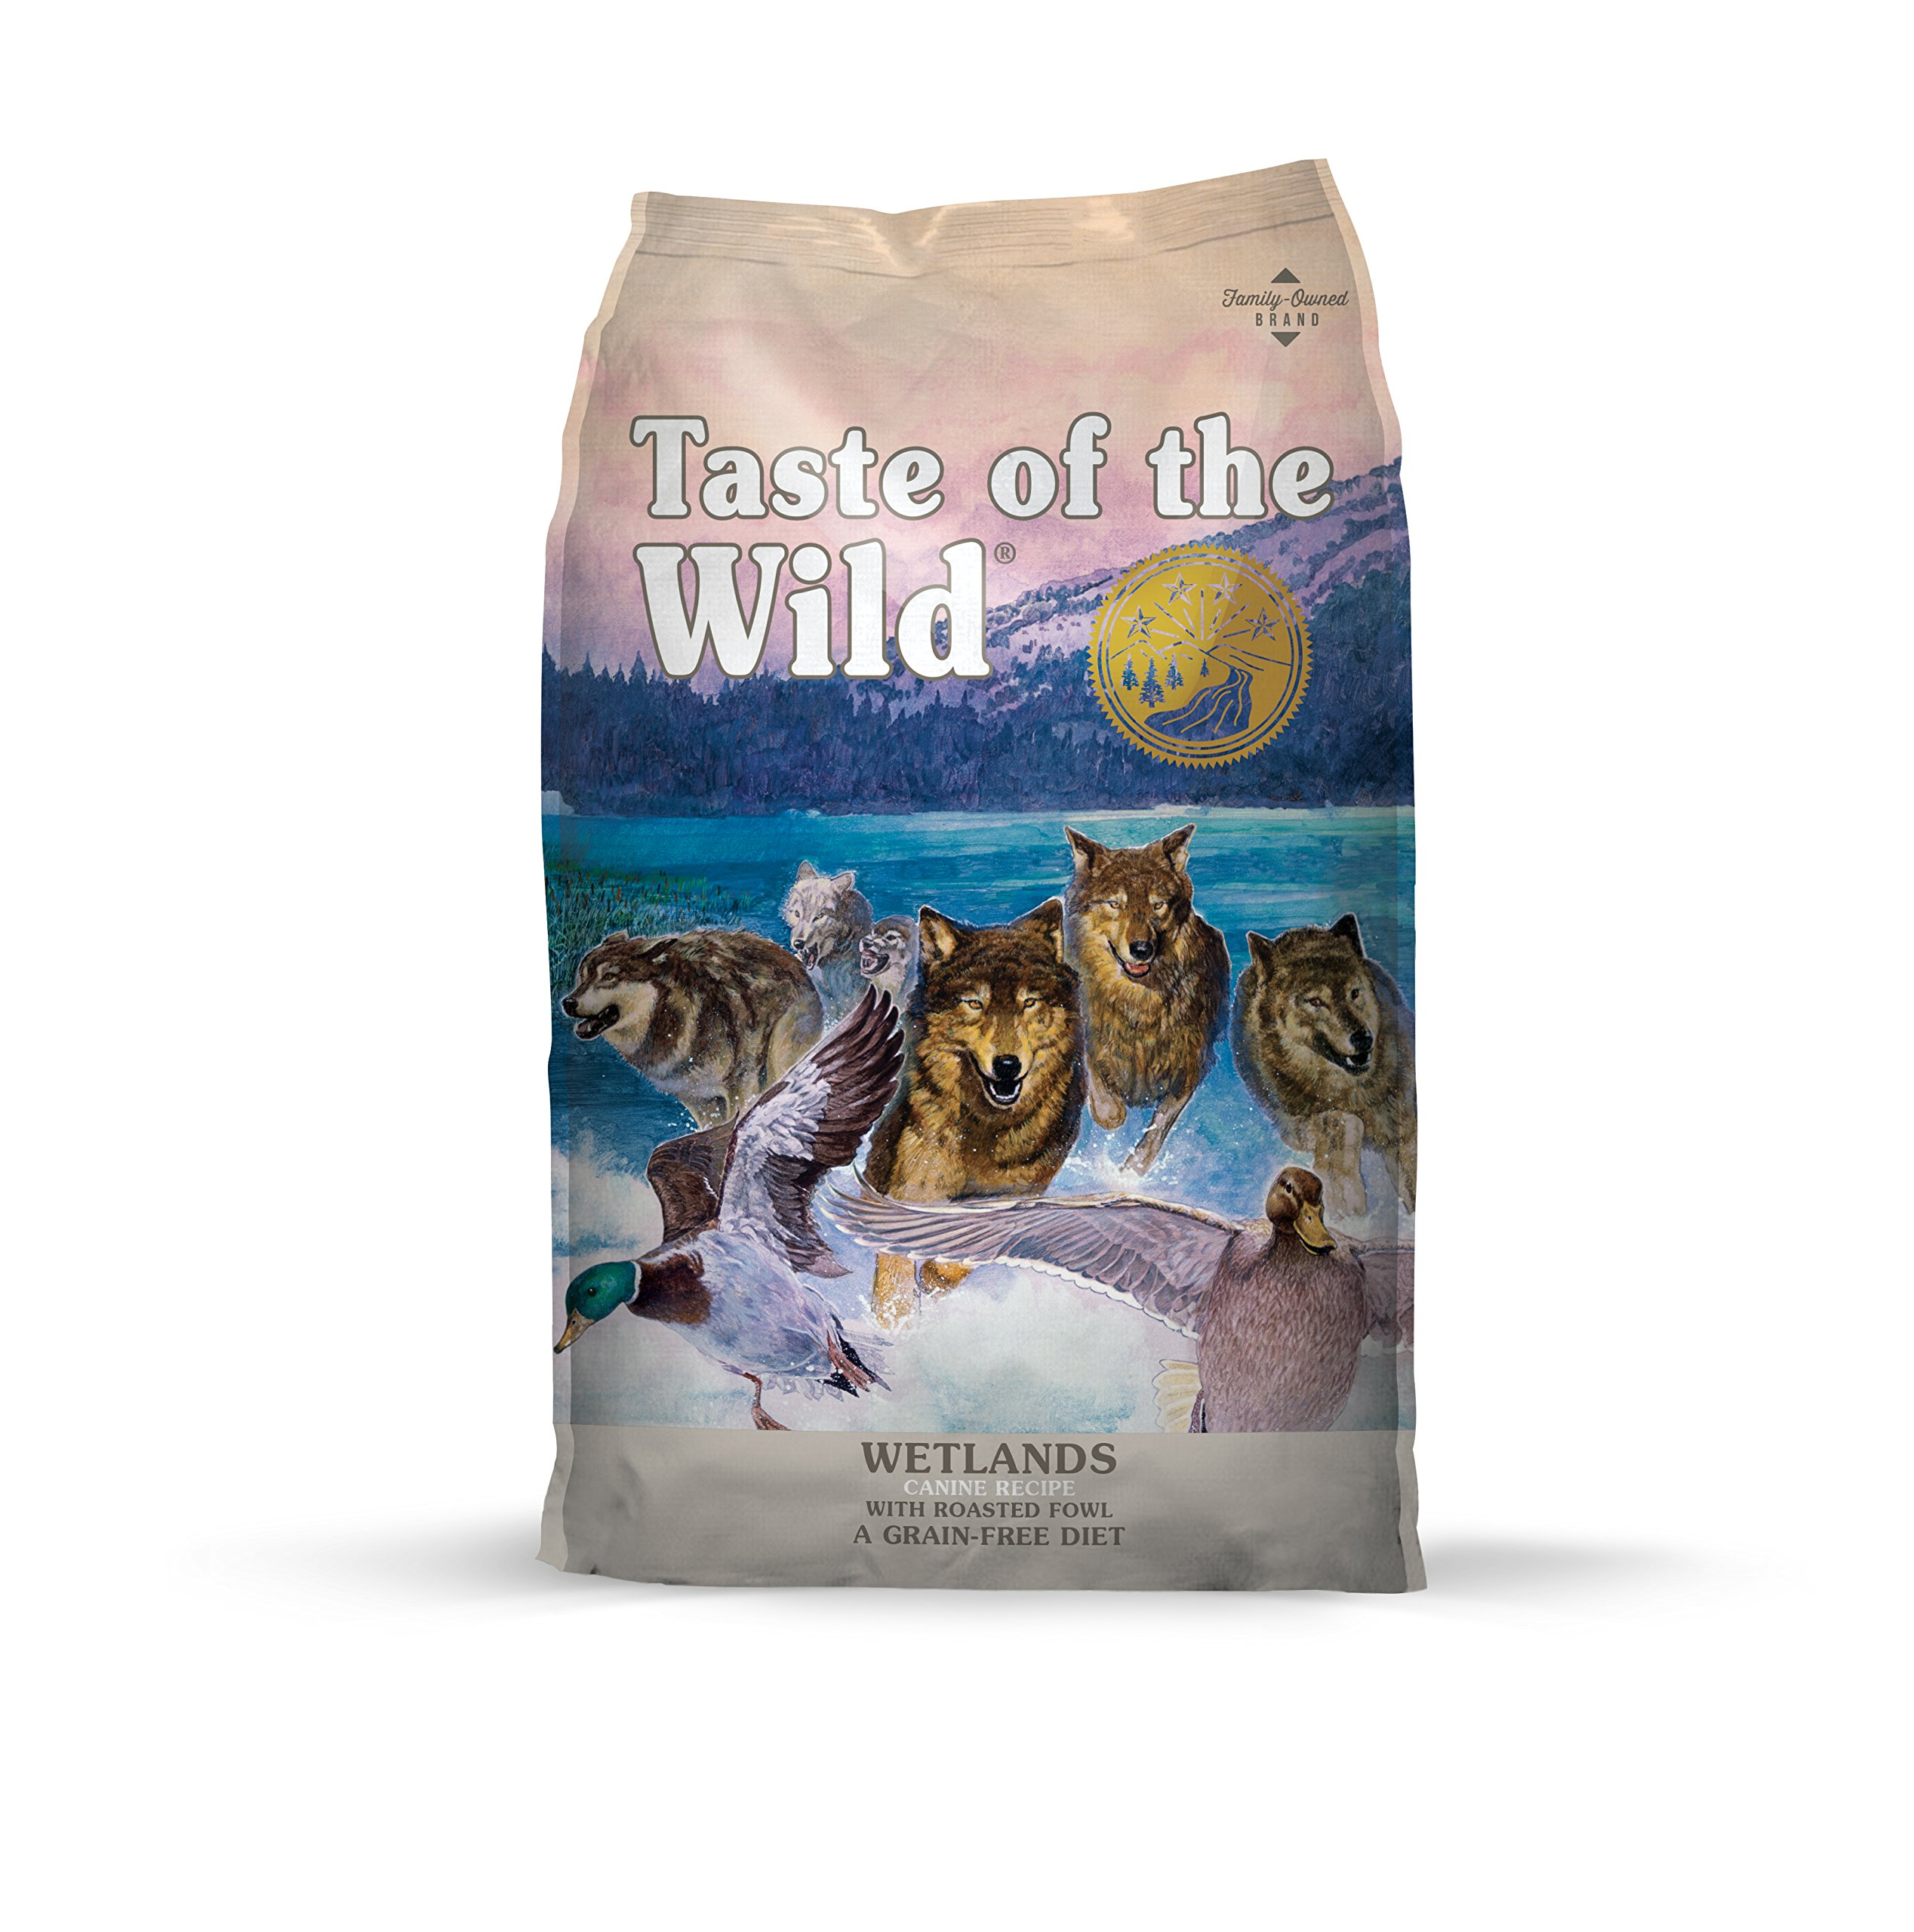 Taste of the Wild Grain Free High Protein Real Meat Recipe Wetlands Premium Dry Dog Food by Taste of the Wild (Image #1)